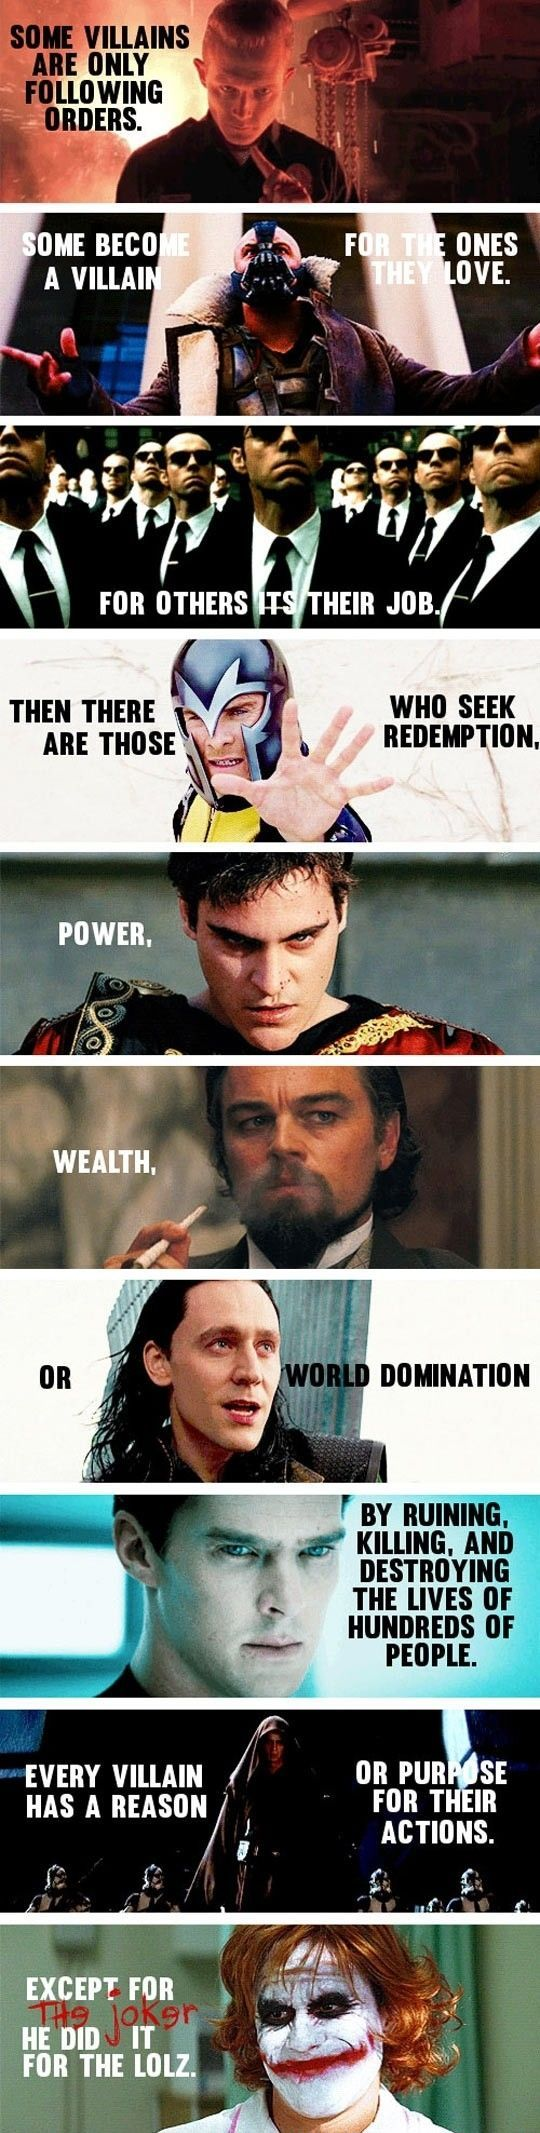 I Believe In Heroes, But Some Villains Are Better #haha #funny